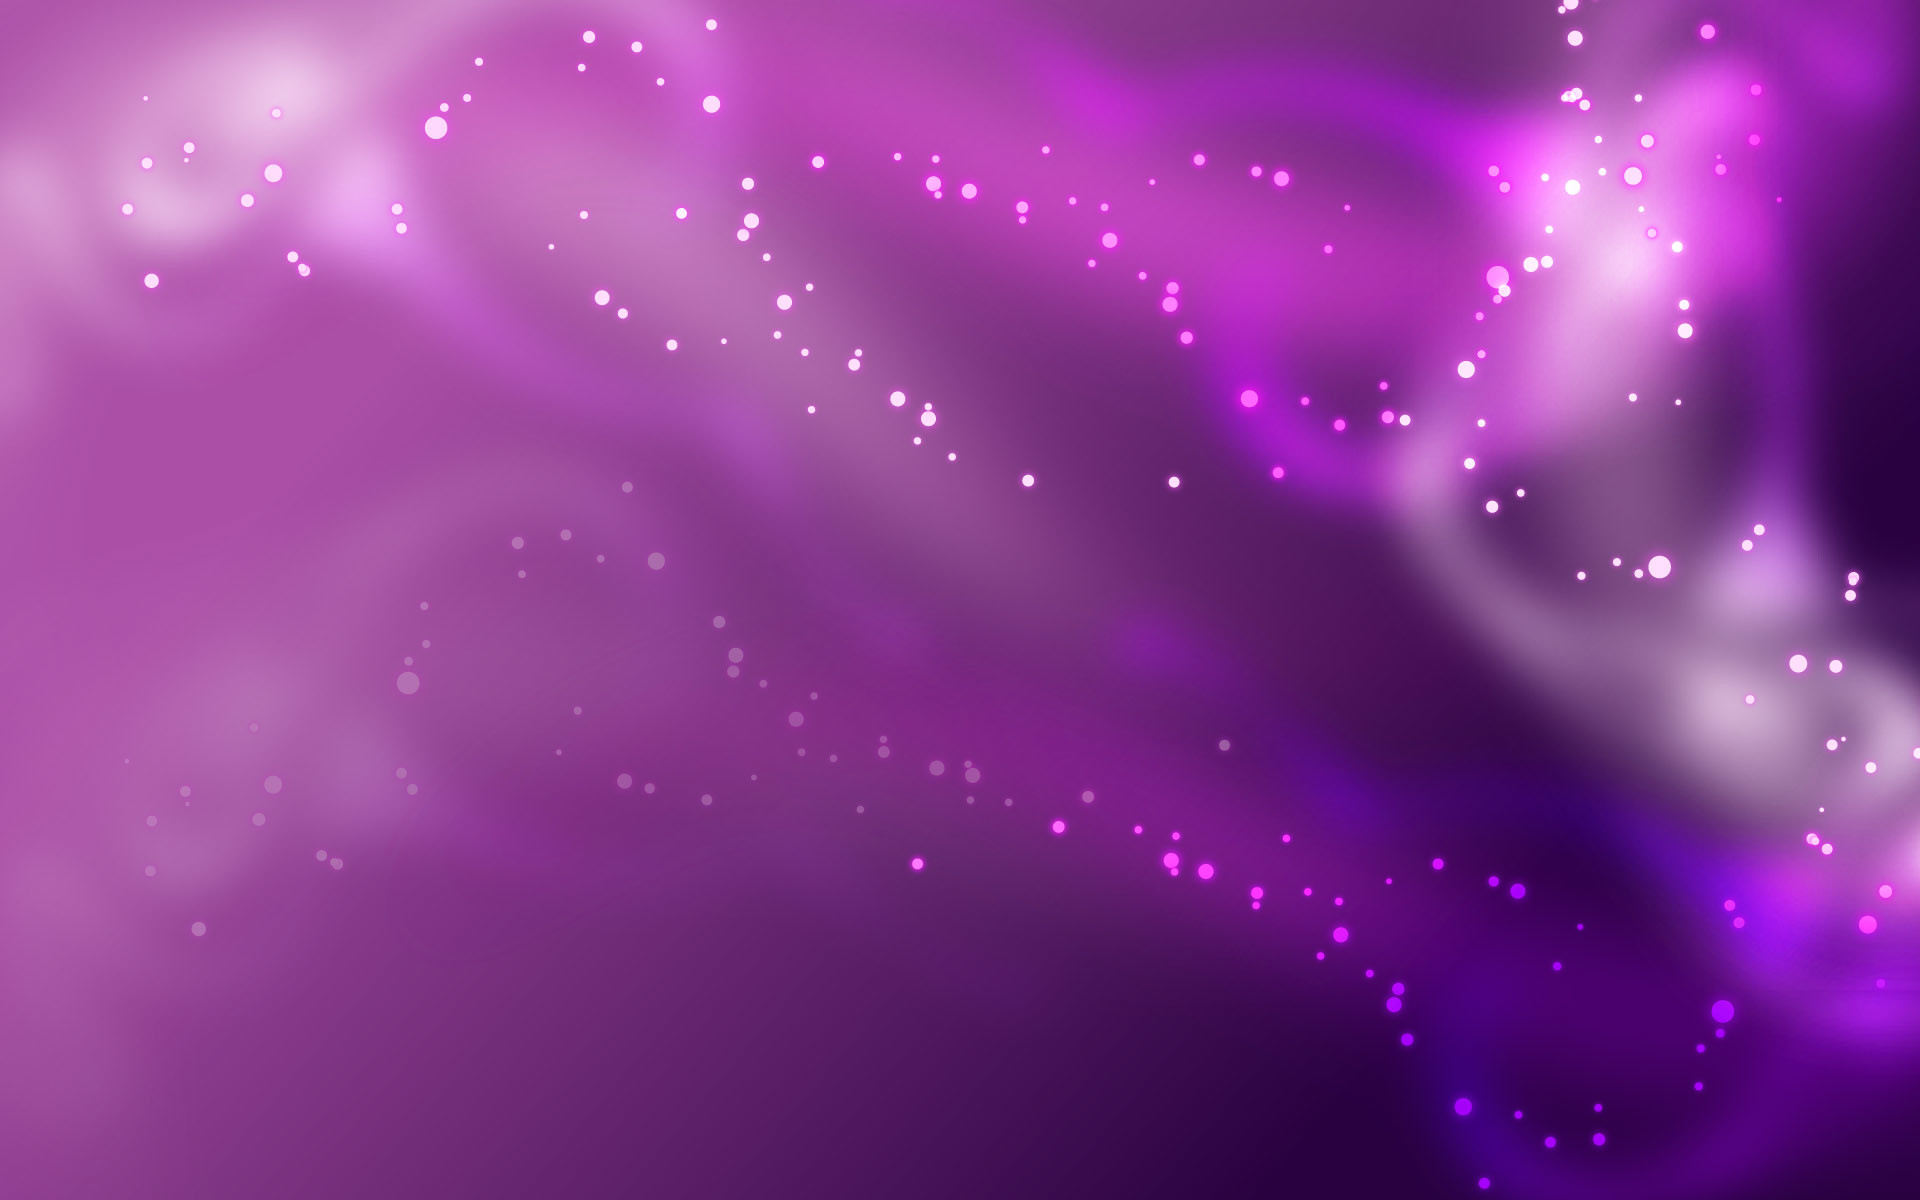 Purple wallpaper 11